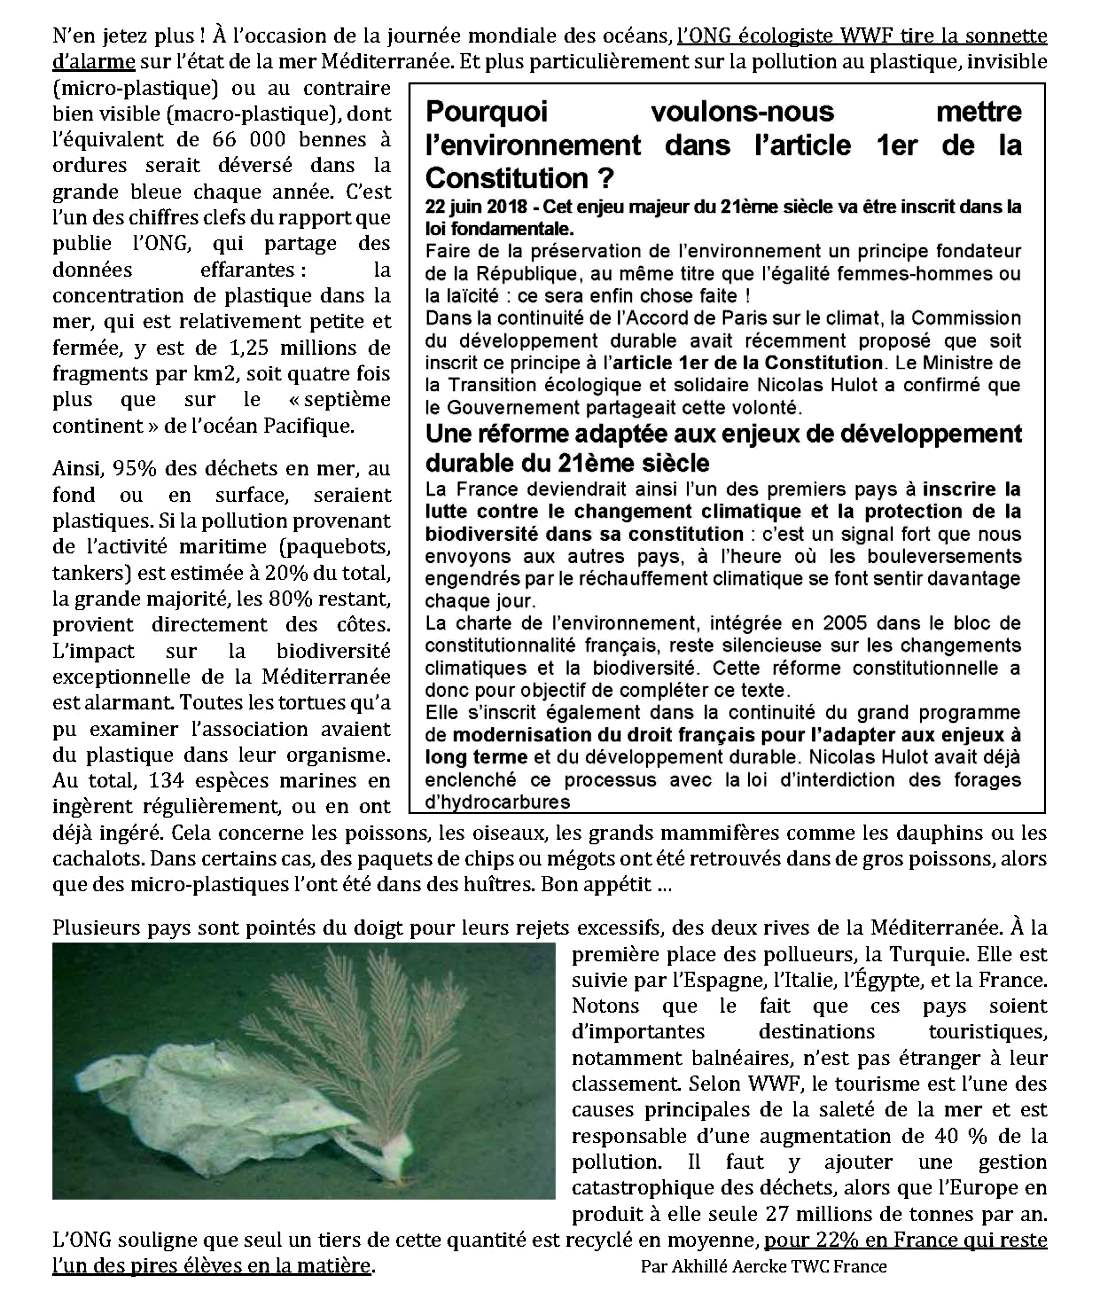 article_Page_2